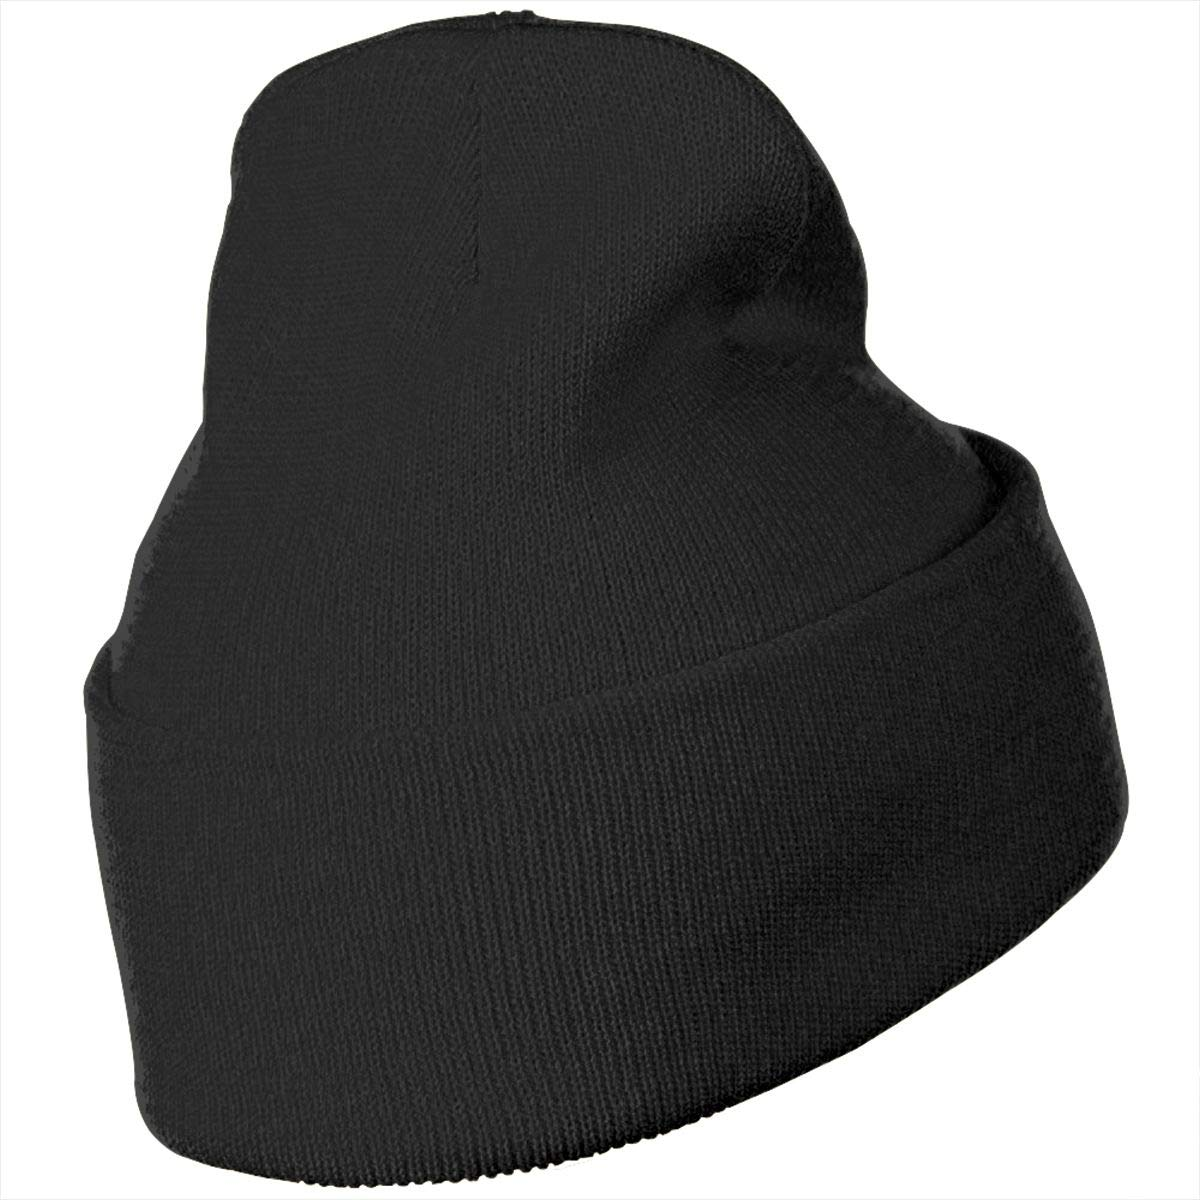 JimHappy DIE OR Meow Winter Warm Hats,Knit Slouchy Thick Skull Cap Black